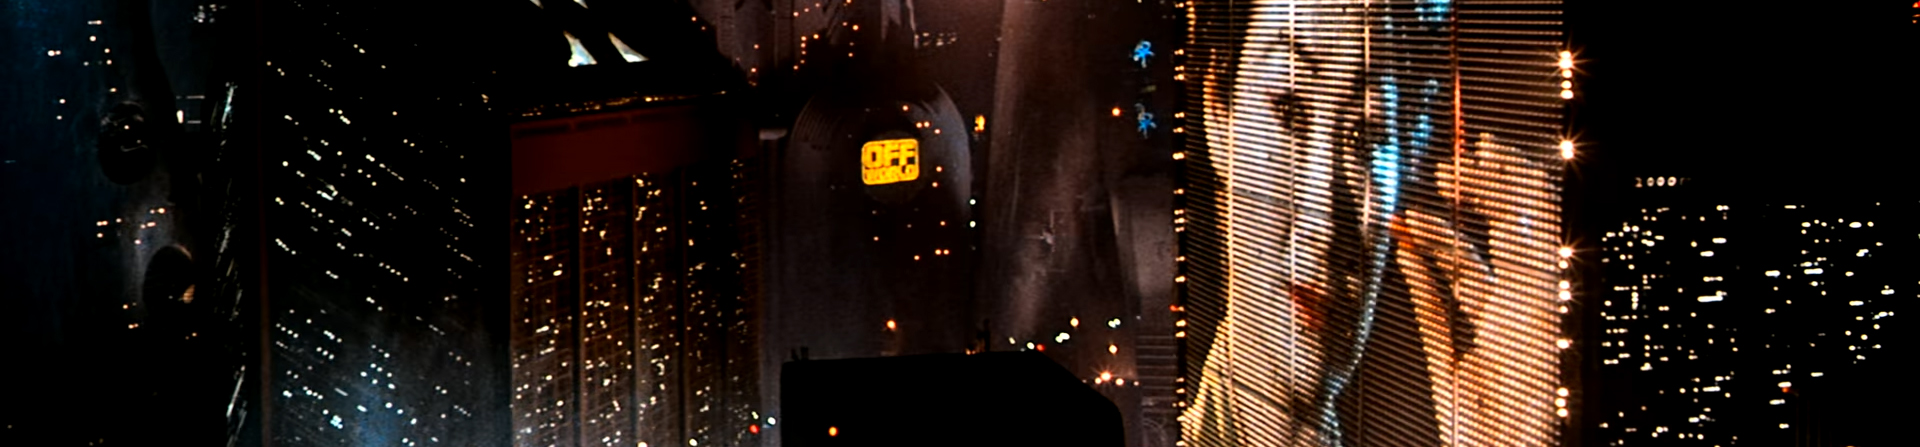 Blade Runner. Image Credit: Warner Bros.